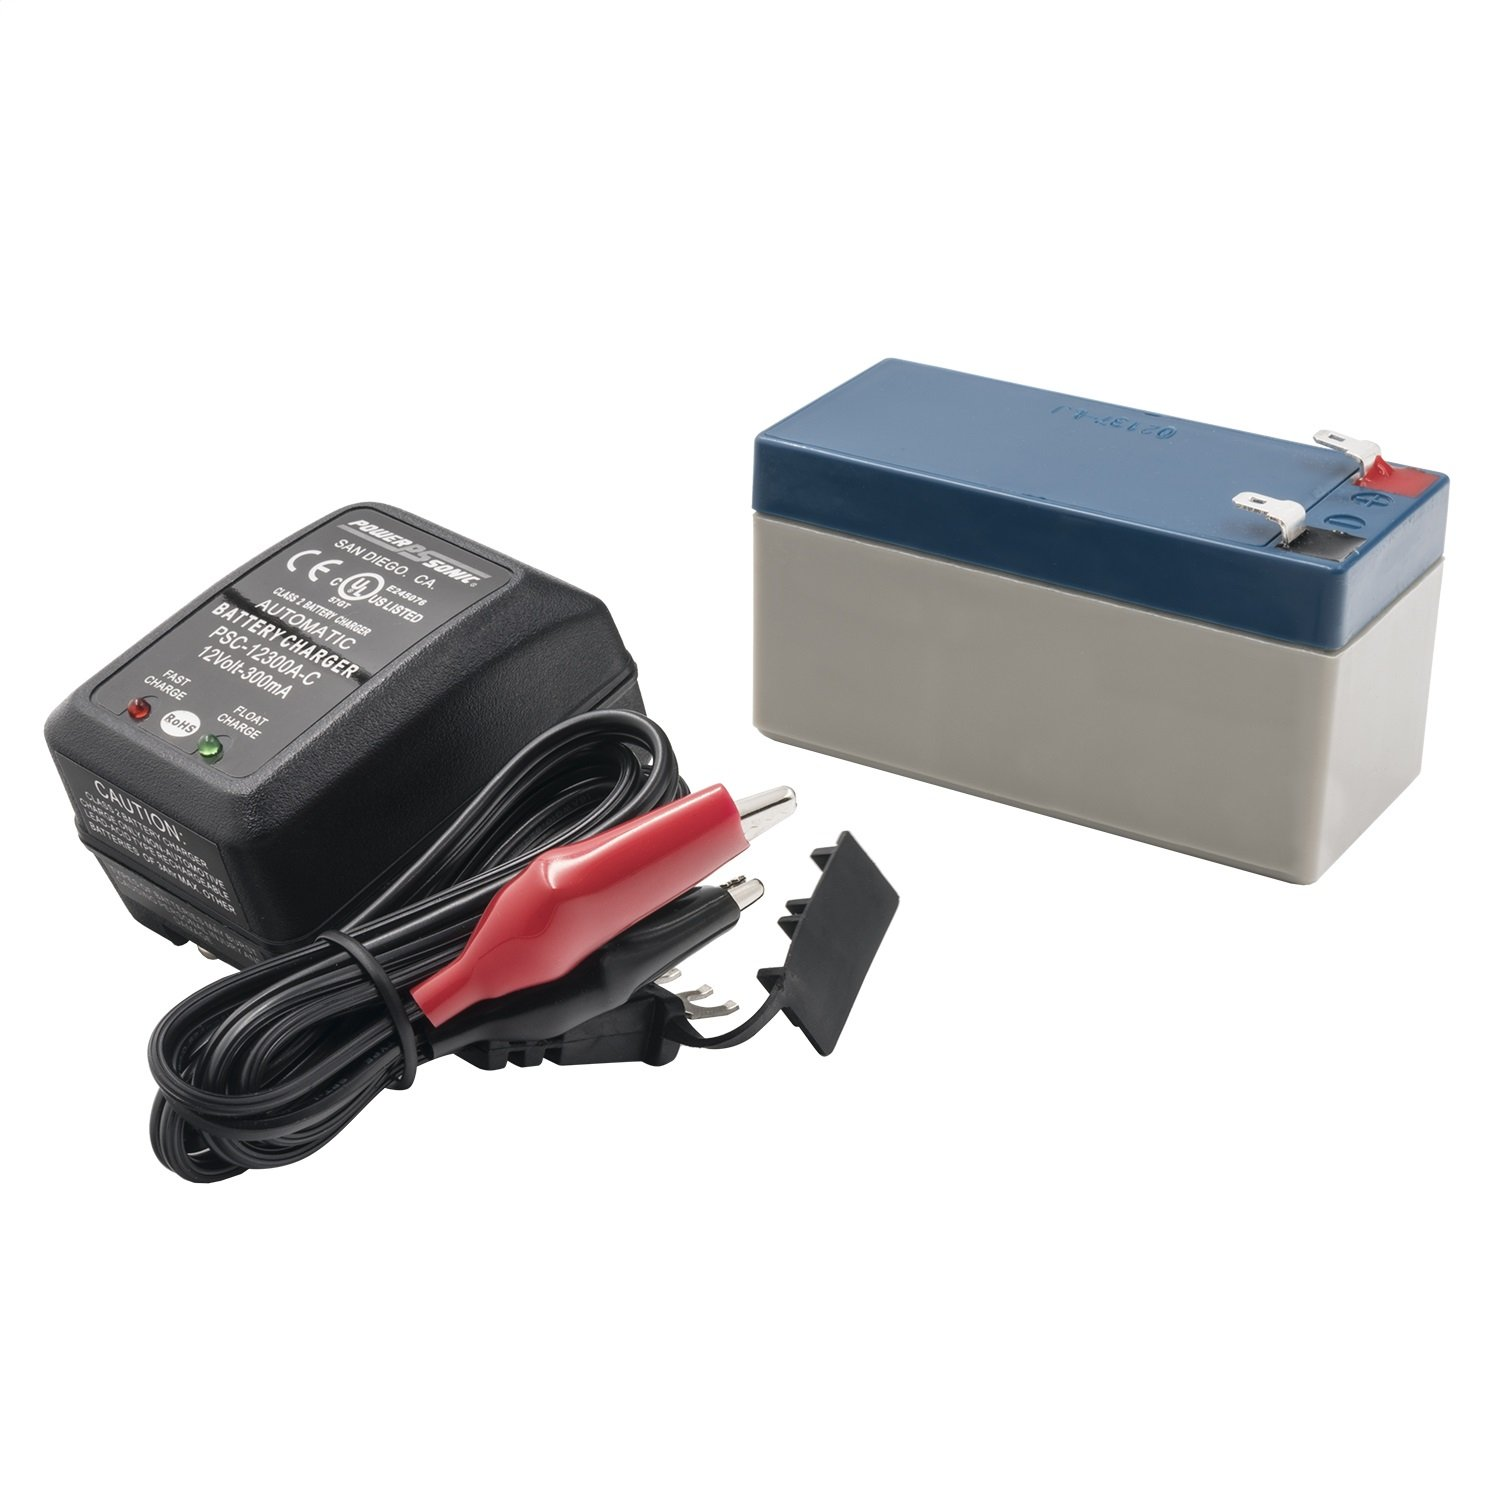 AutoMeter 9217 Extreme Environment Battery Pack And Charger Kit AGM 12V 1.4AH Extreme Environment Battery Pack And Charger Kit by Auto Meter